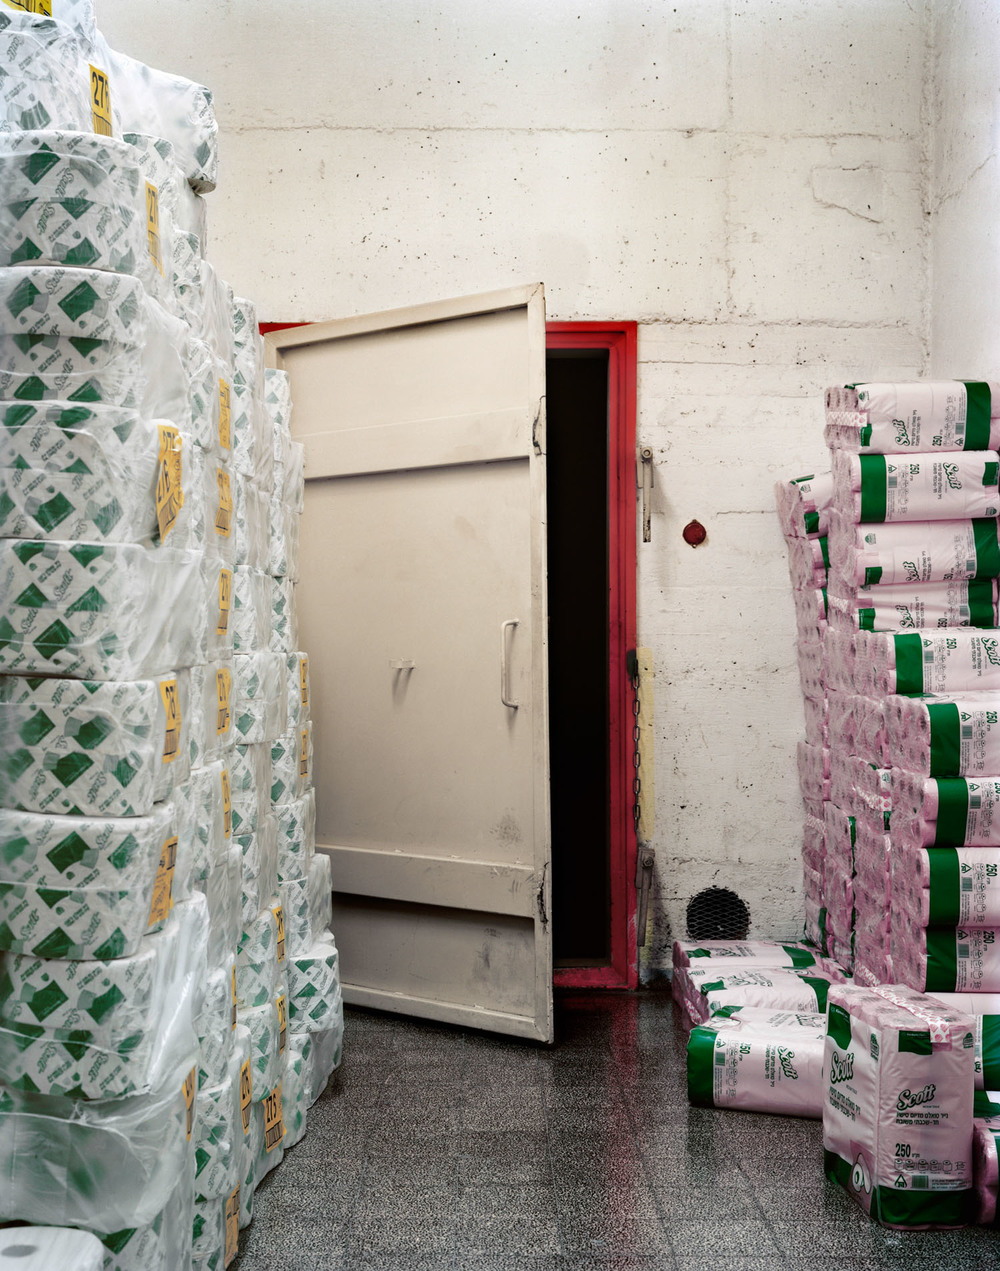 "Toilet Paper Stacks, Hebrew University, Mount Scopus, Jerusalem,  2007, Chromogenic print, 30"" x 20"""